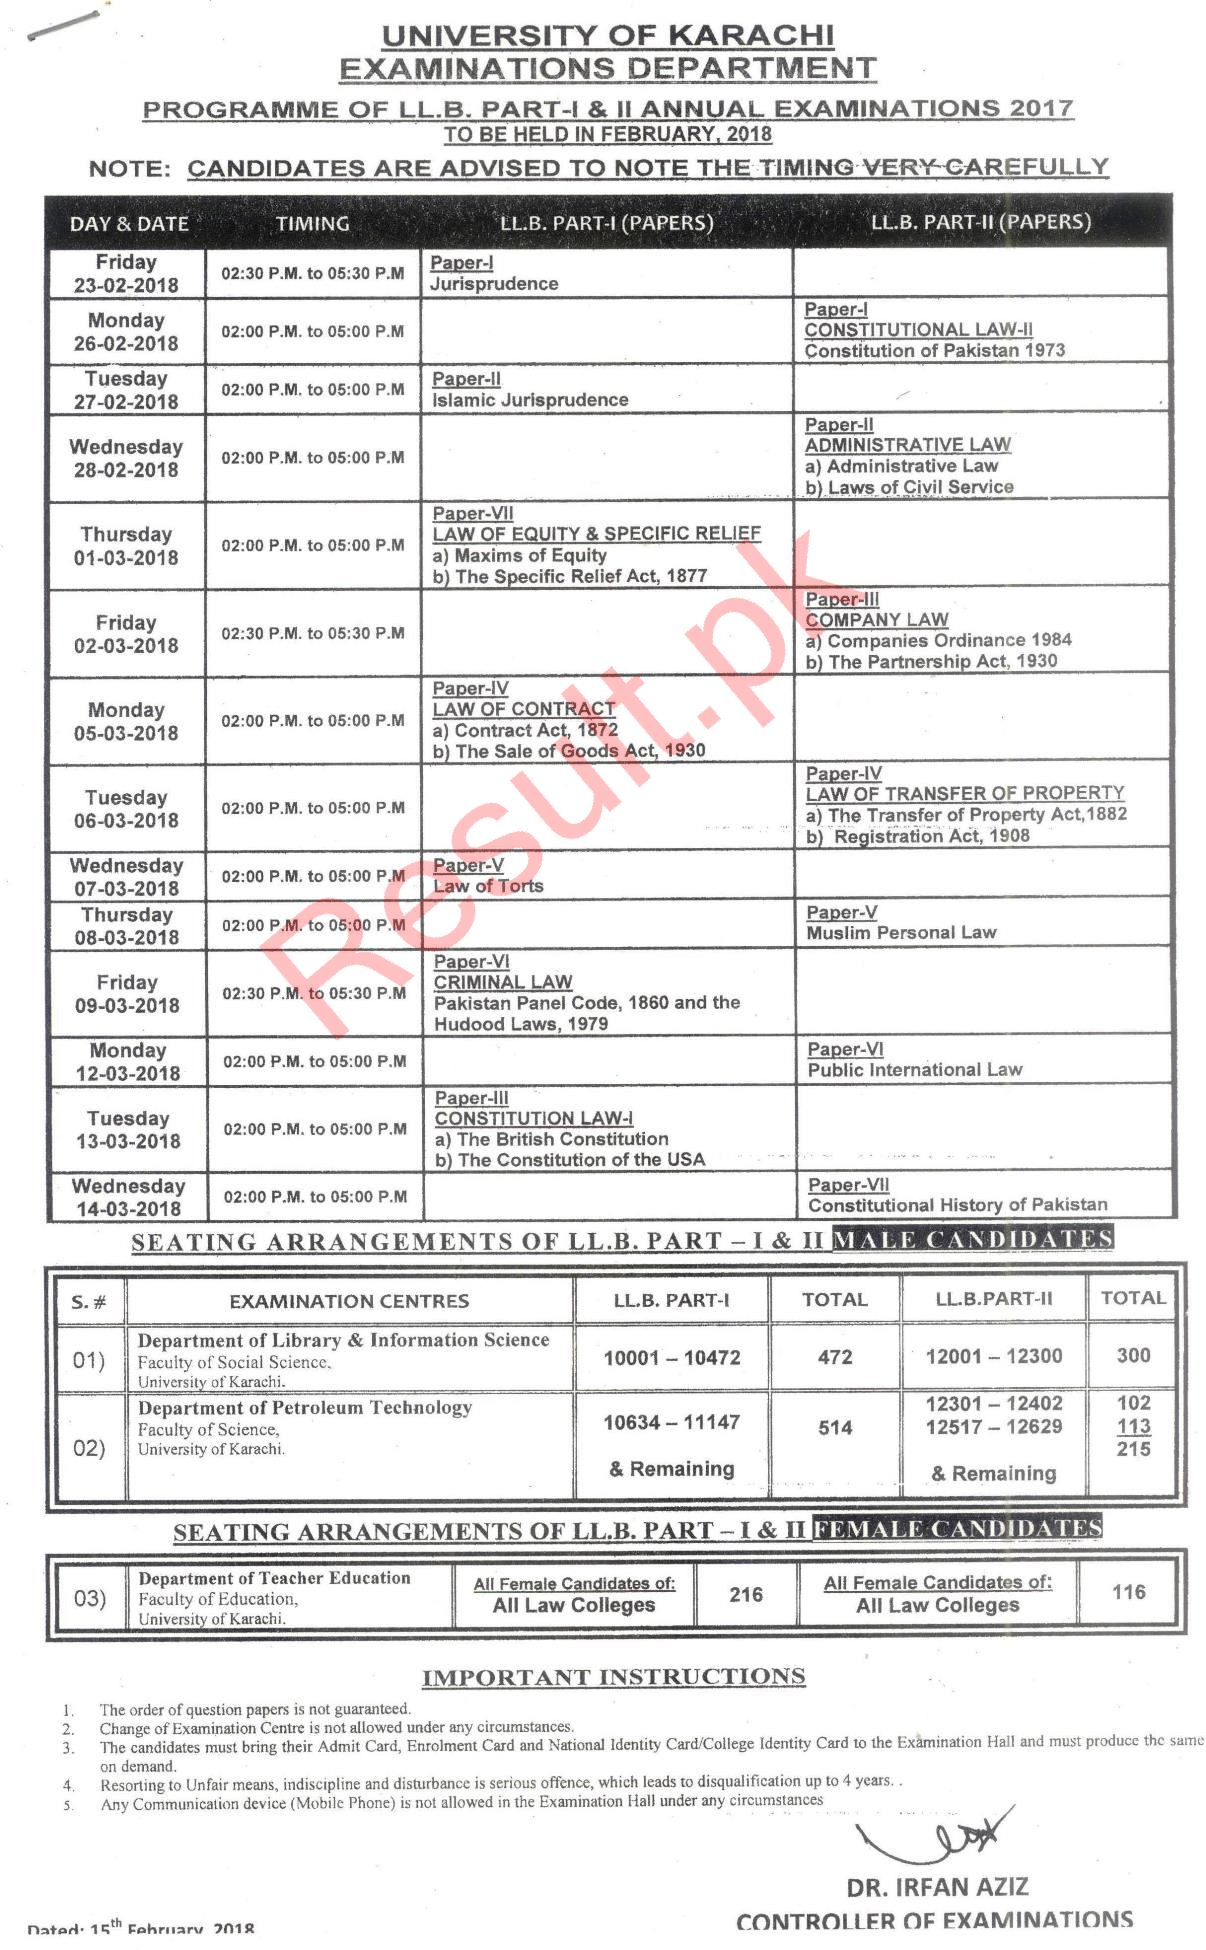 punjab university result b.a part 2 2018